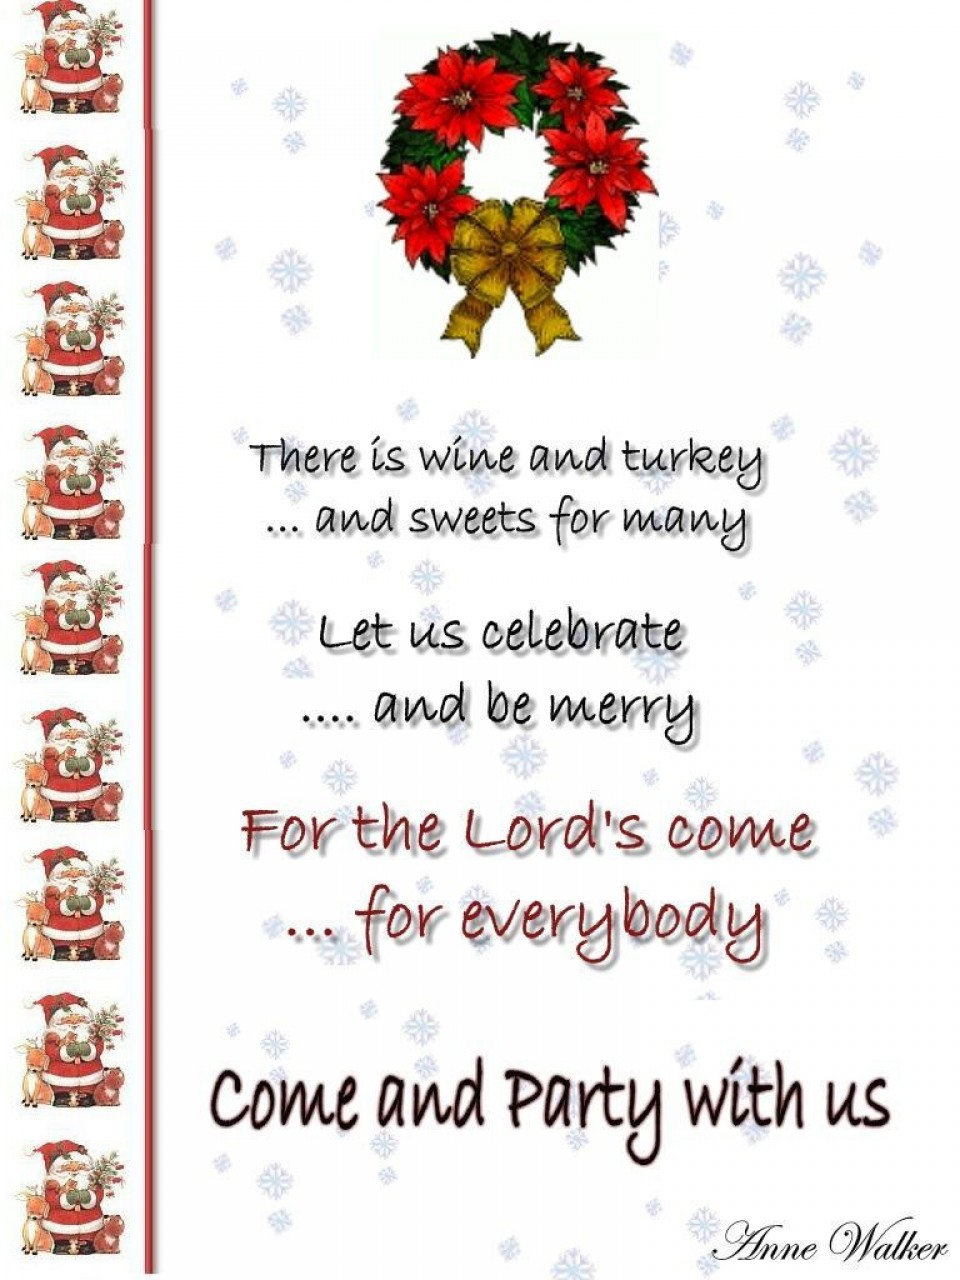 004 Impressive Office Christma Party Invitation Wording Sample Highest Clarity  Holiday Example960